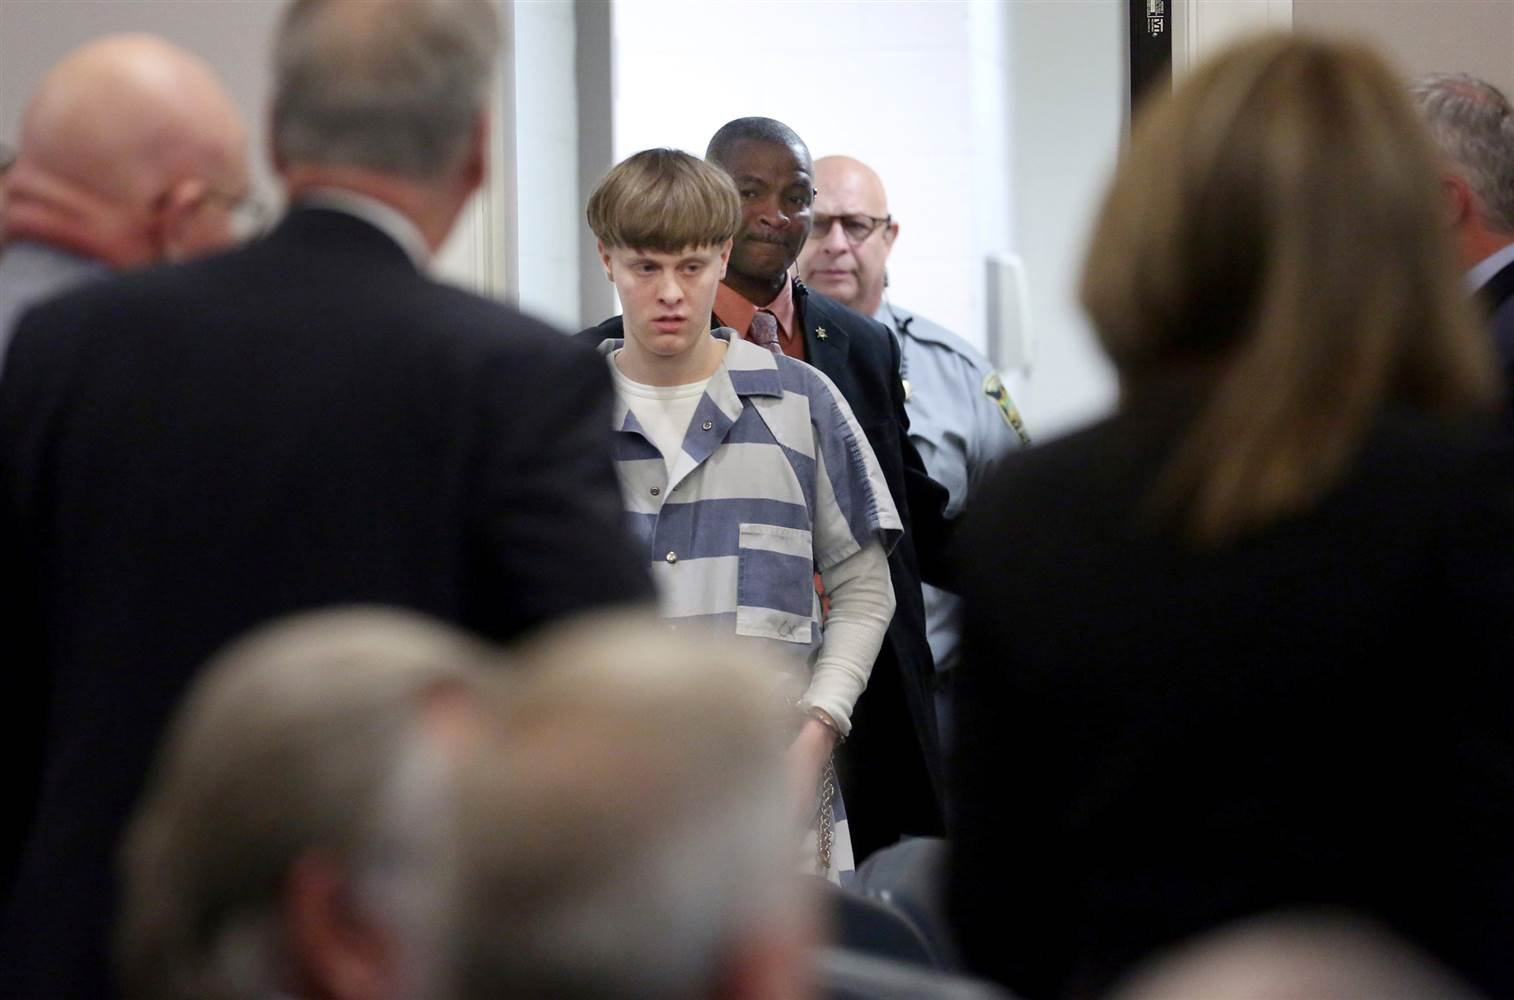 Dylann Roof is escorted into the court room at the Charleston County Judicial Center in Charleston, South Carolina, April 10, 2017. Grace Beahm/Pool / Reuters